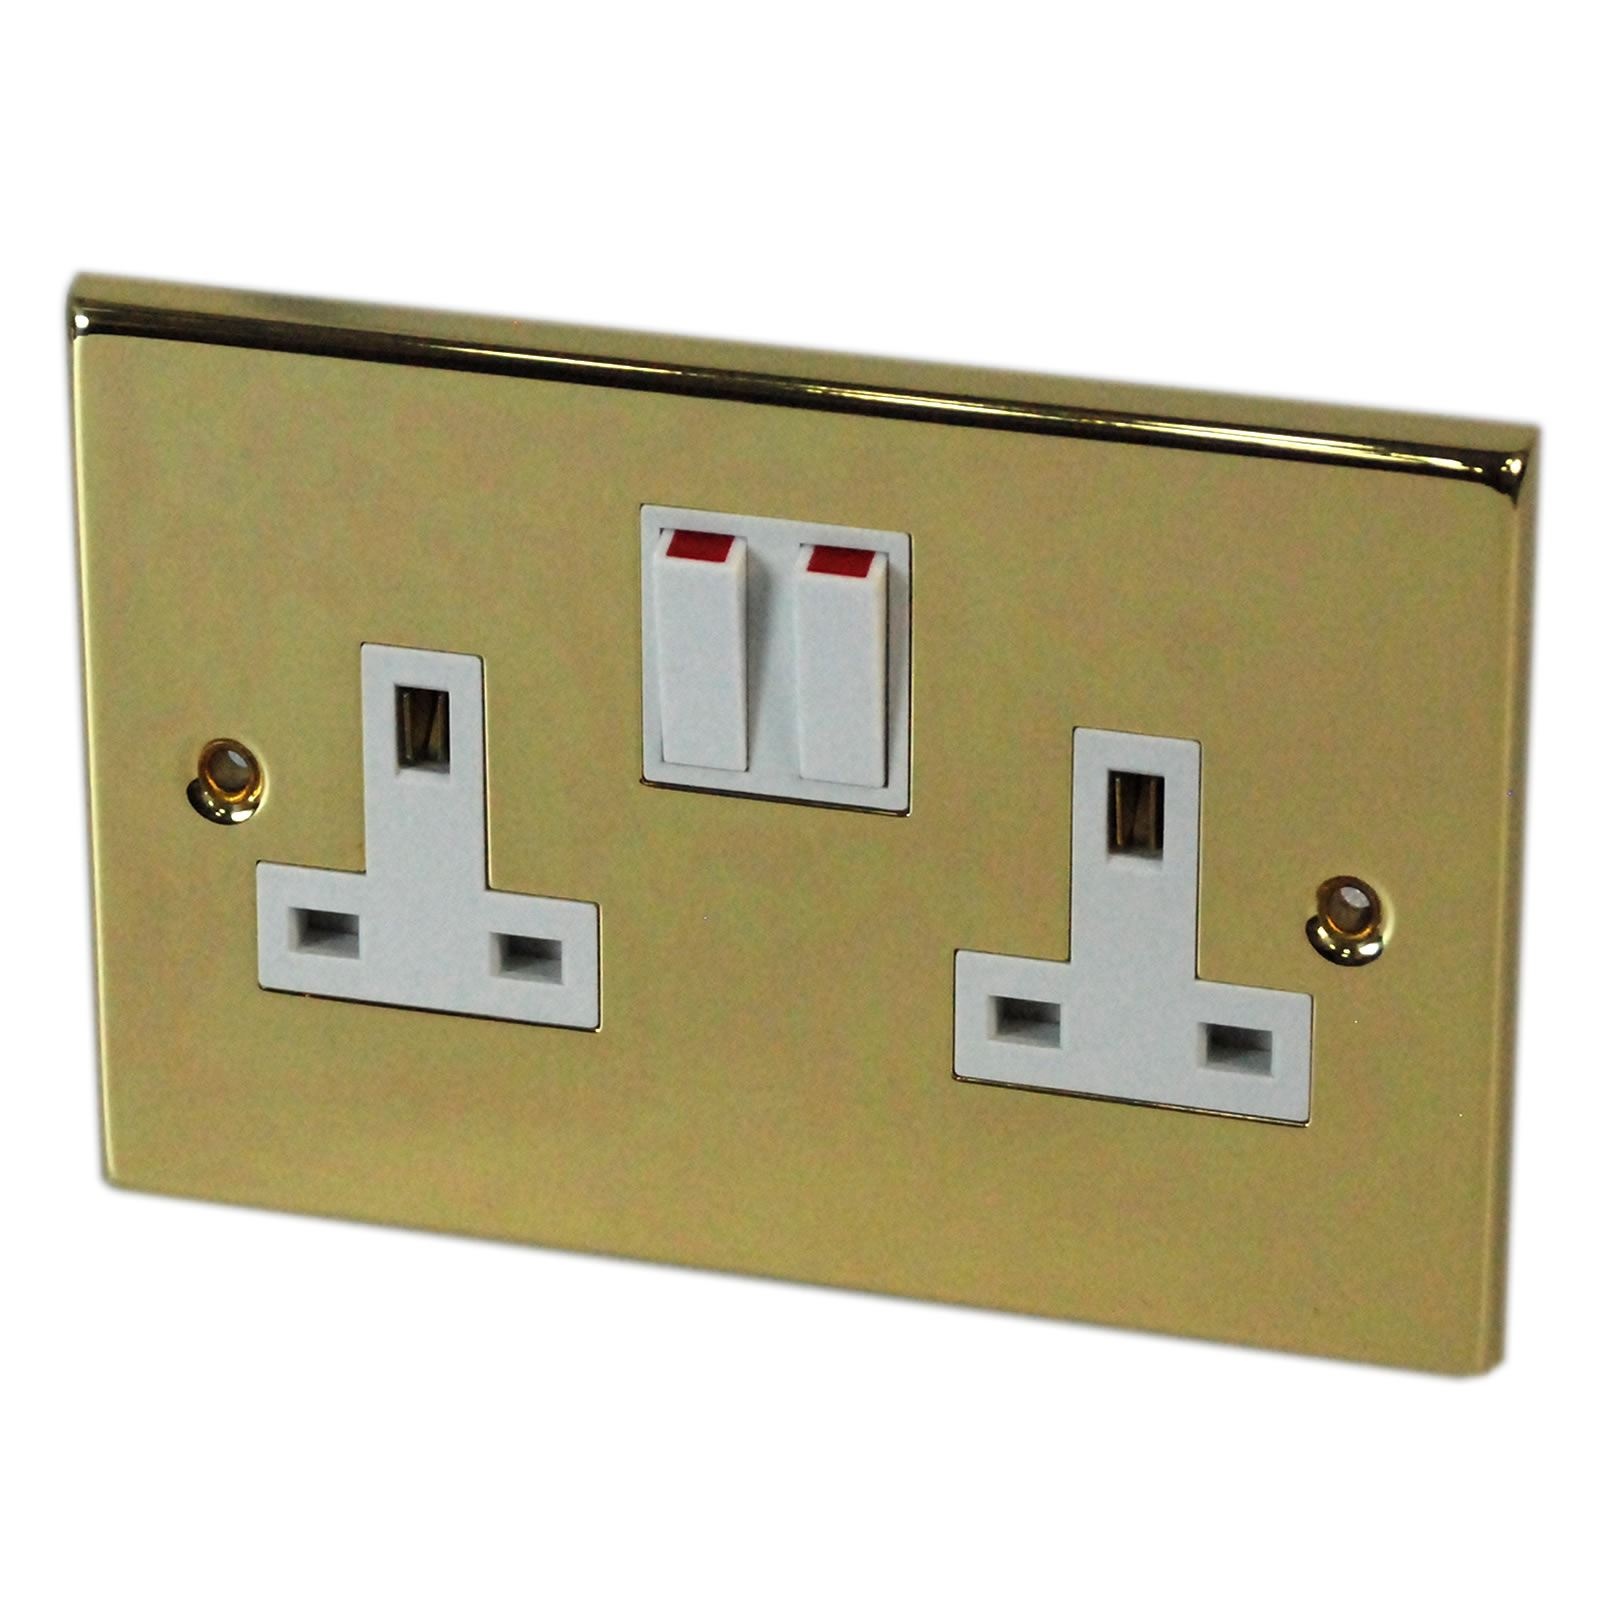 Crabtree-Wall-Plug-Socket-Faceplate-Cooker-Switches-Matte-Chrome-Mixed-Styles